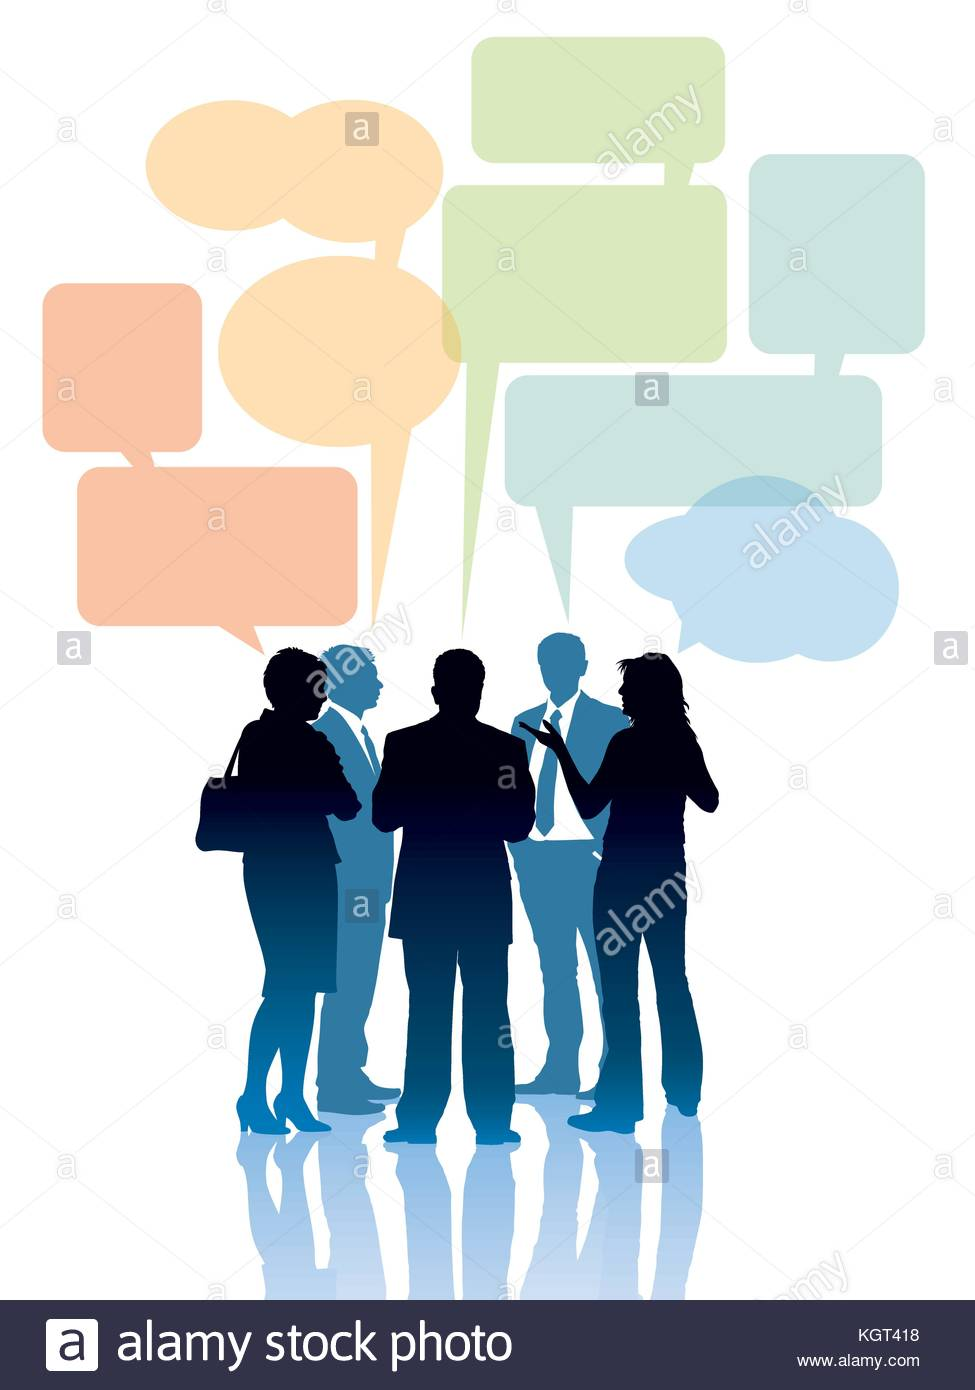 975x1390 Group Discussion Stock Vector Images